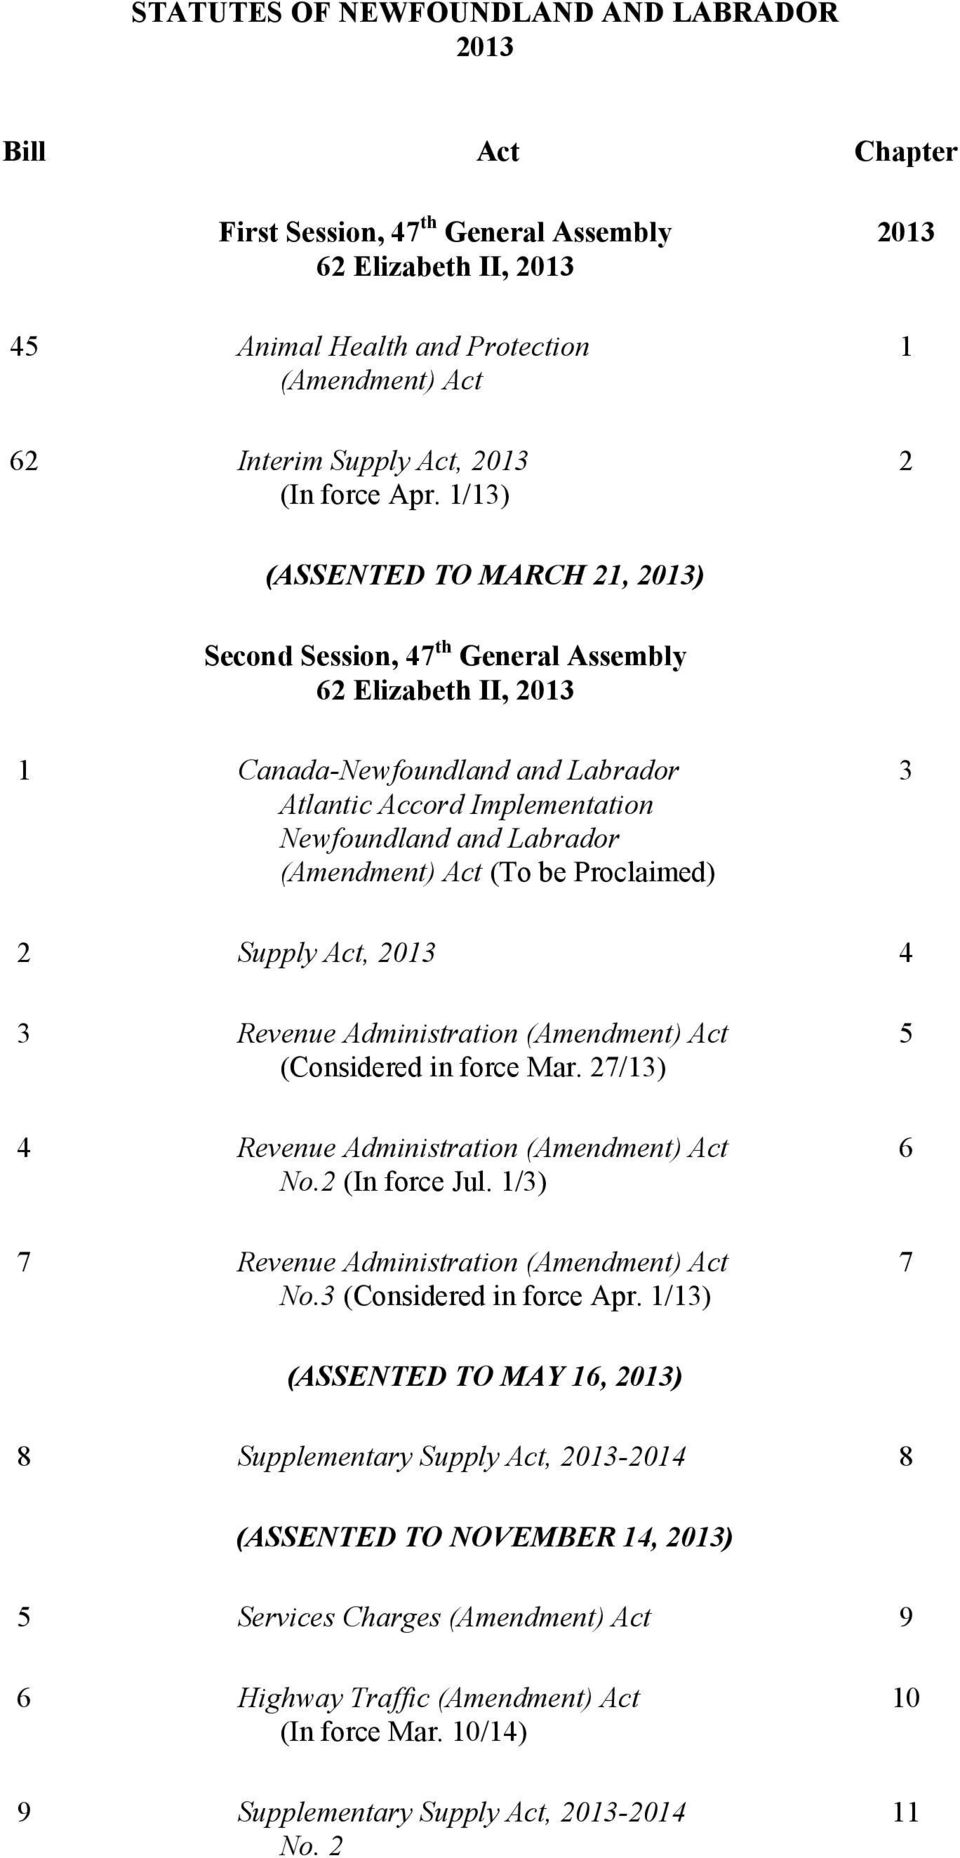 1/13) 2013 1 2 (ASSENTED TO MARCH 21, 2013) Second Session, 47 th General Assembly 62 Elizabeth II, 2013 1 Canada-Newfoundland and Labrador Atlantic Accord Implementation Newfoundland and Labrador